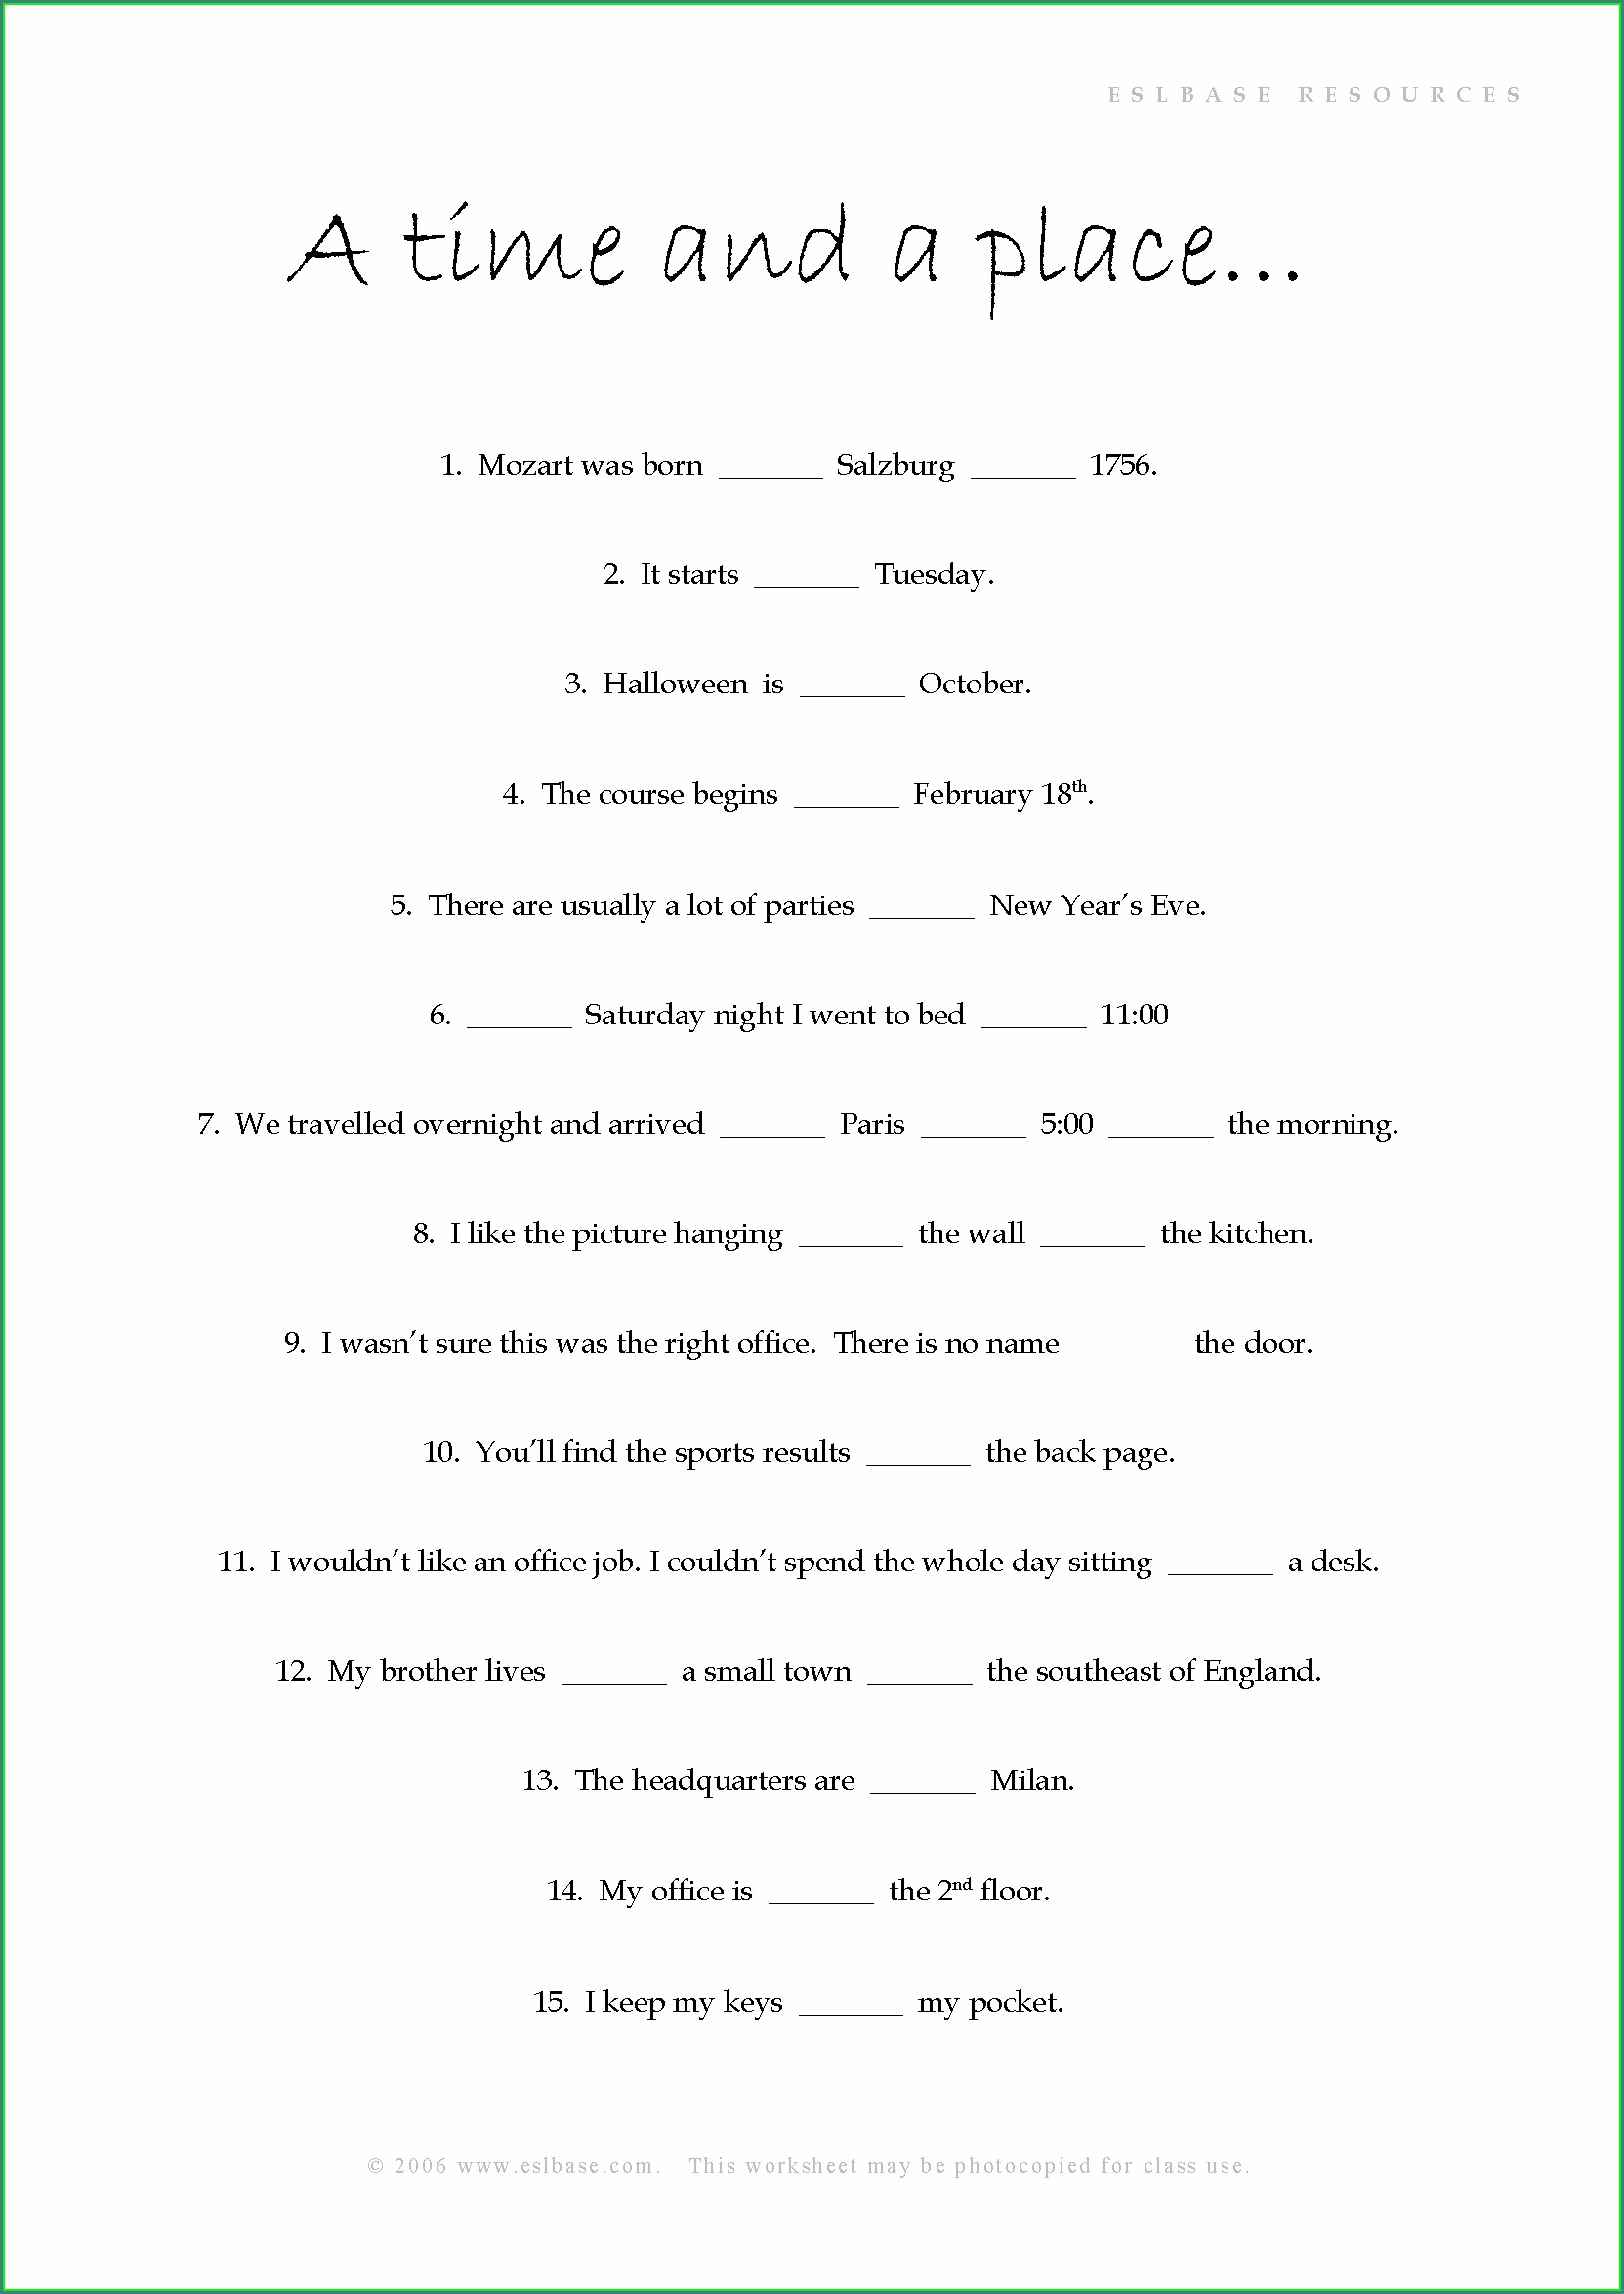 Prepositions Of Time And Place Worksheet Pdf